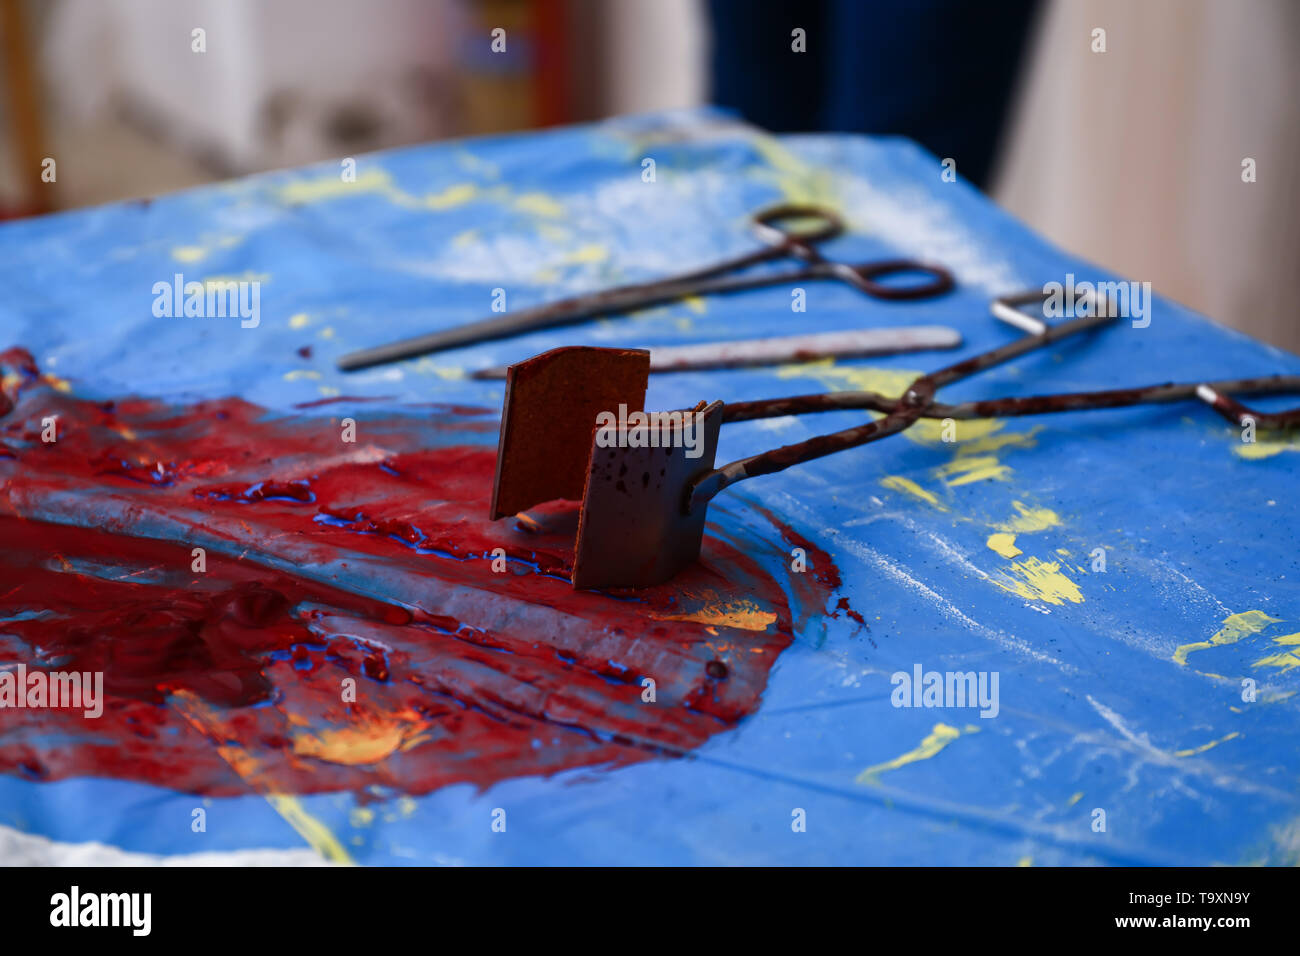 Crime scene with instruments of tortures - Stock Image